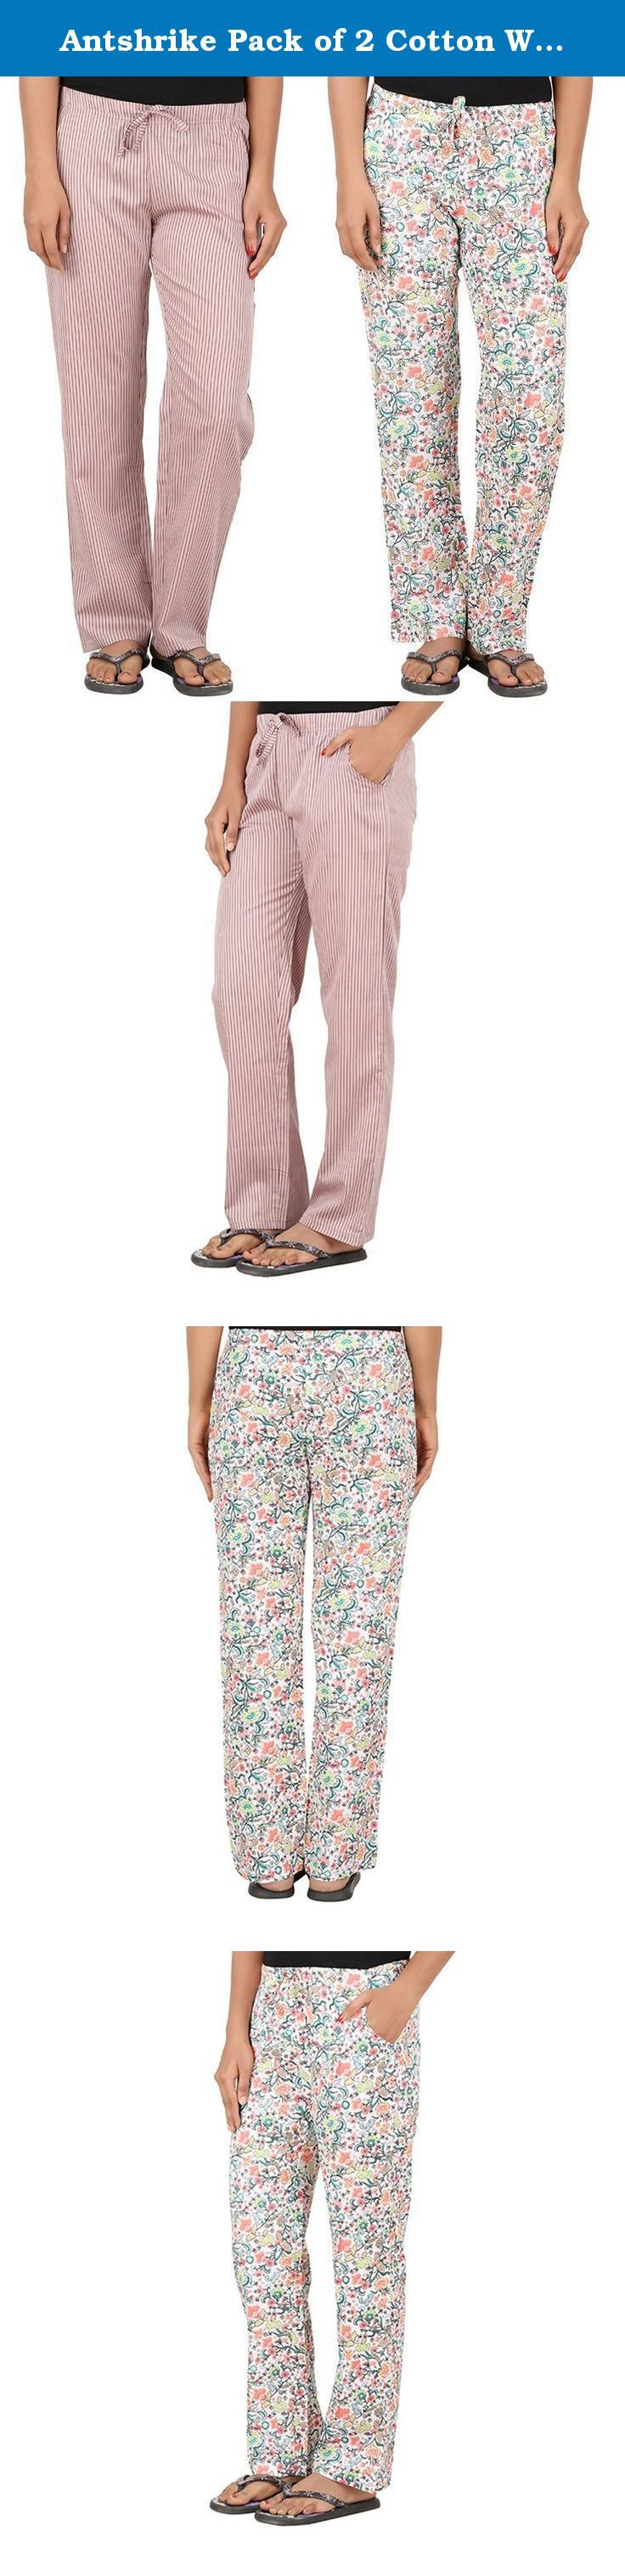 Antshrike Pack of 2 Cotton Woven Women Pyjama Nightwear Pant. Asspee group presents combos of women nightwear pyjamas pant which is made of 100% cotton. This latest collection contains stripes, checked and Flora prints patterns. This are comfortable to use as nightwear.